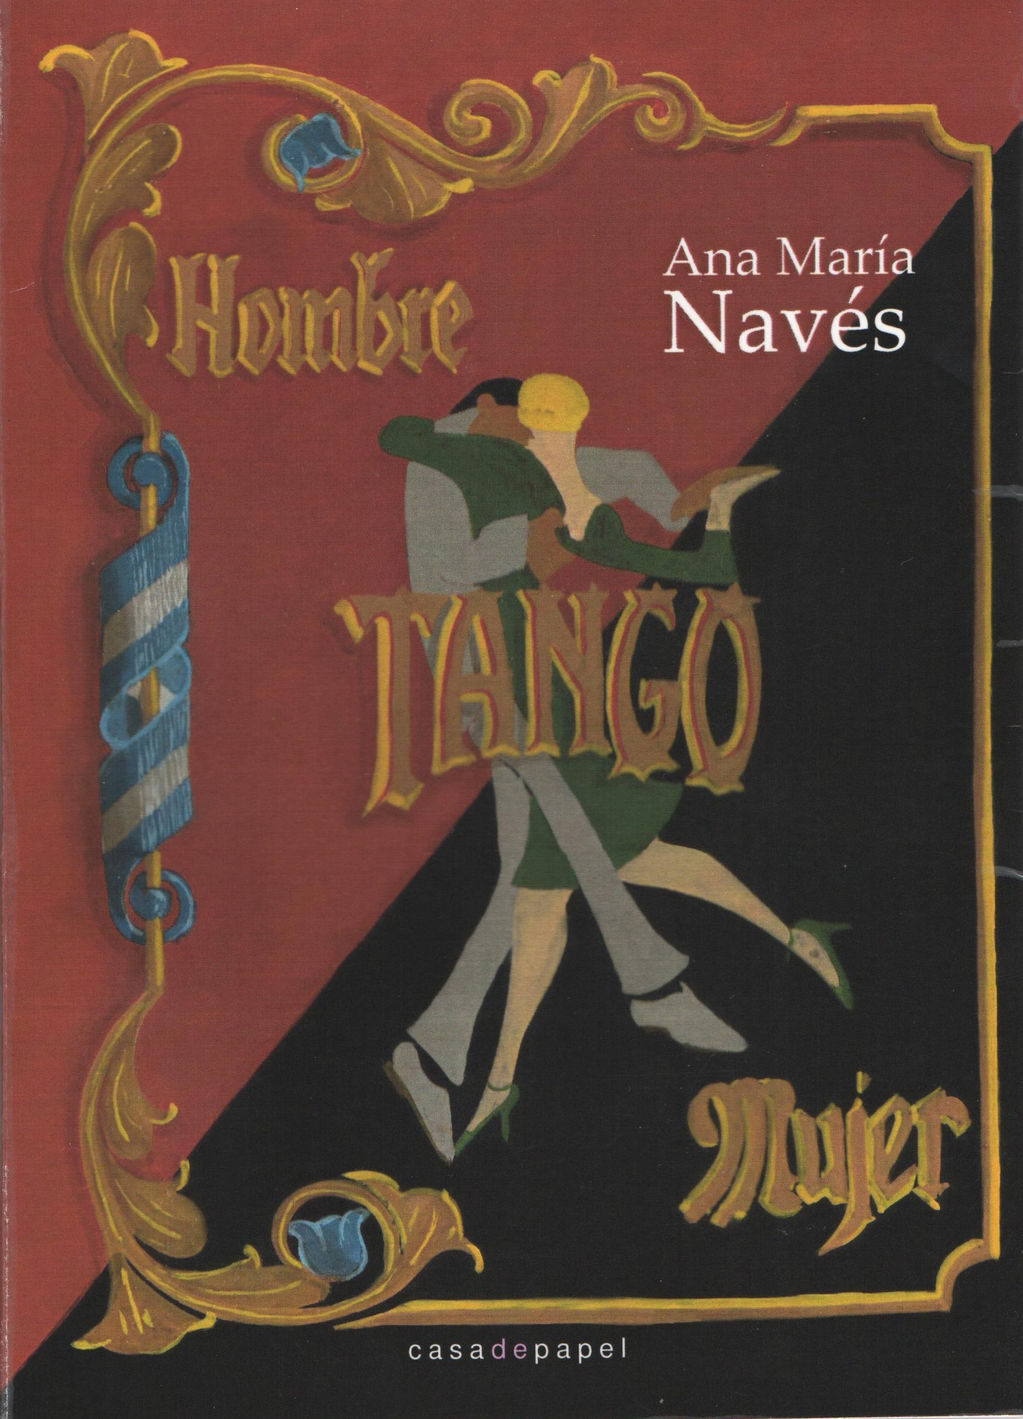 Hombre Tango Mujer